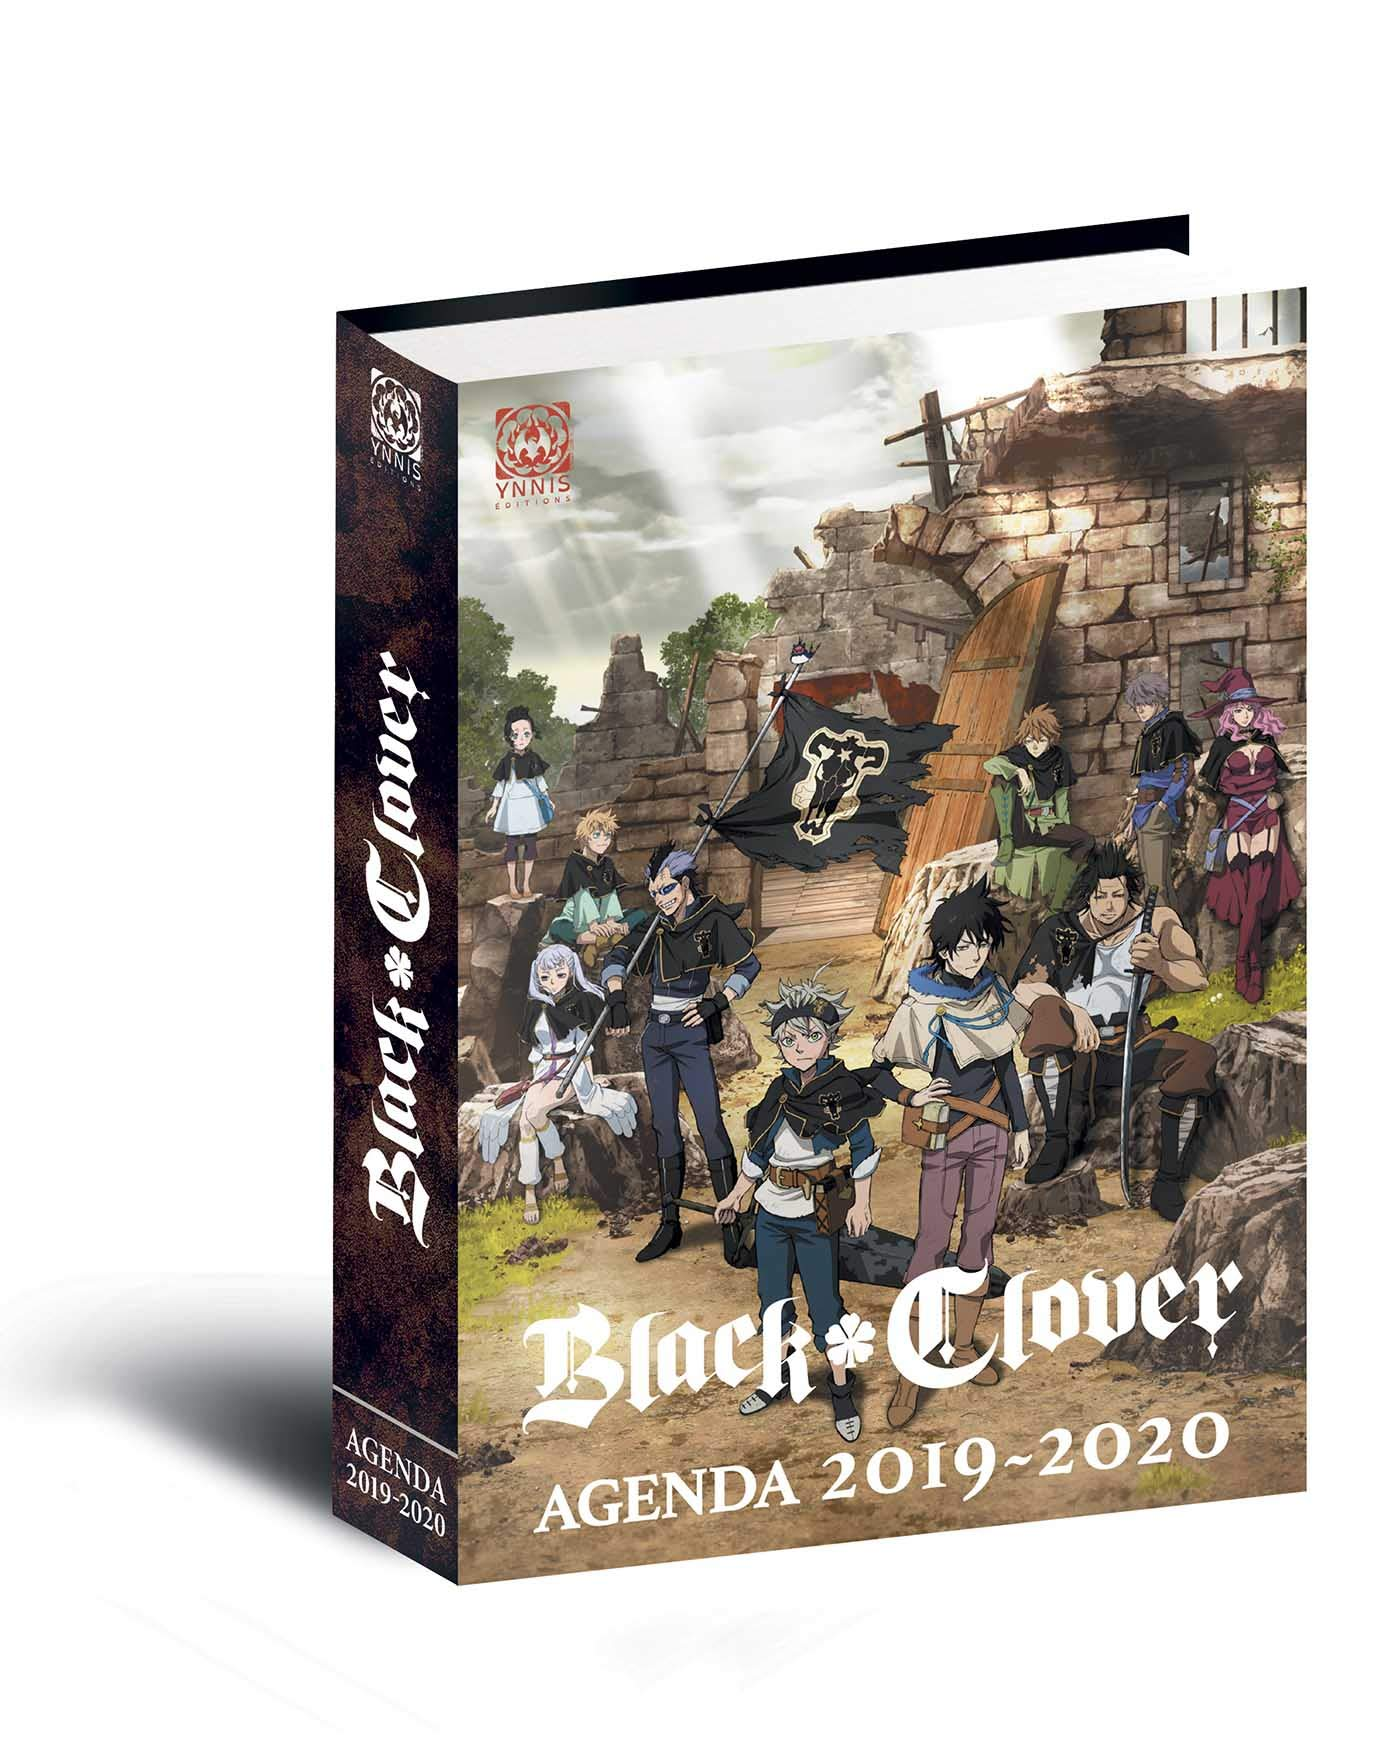 Amazon.com: Agenda Black Clover 2019-2020 (9782376970675): Books